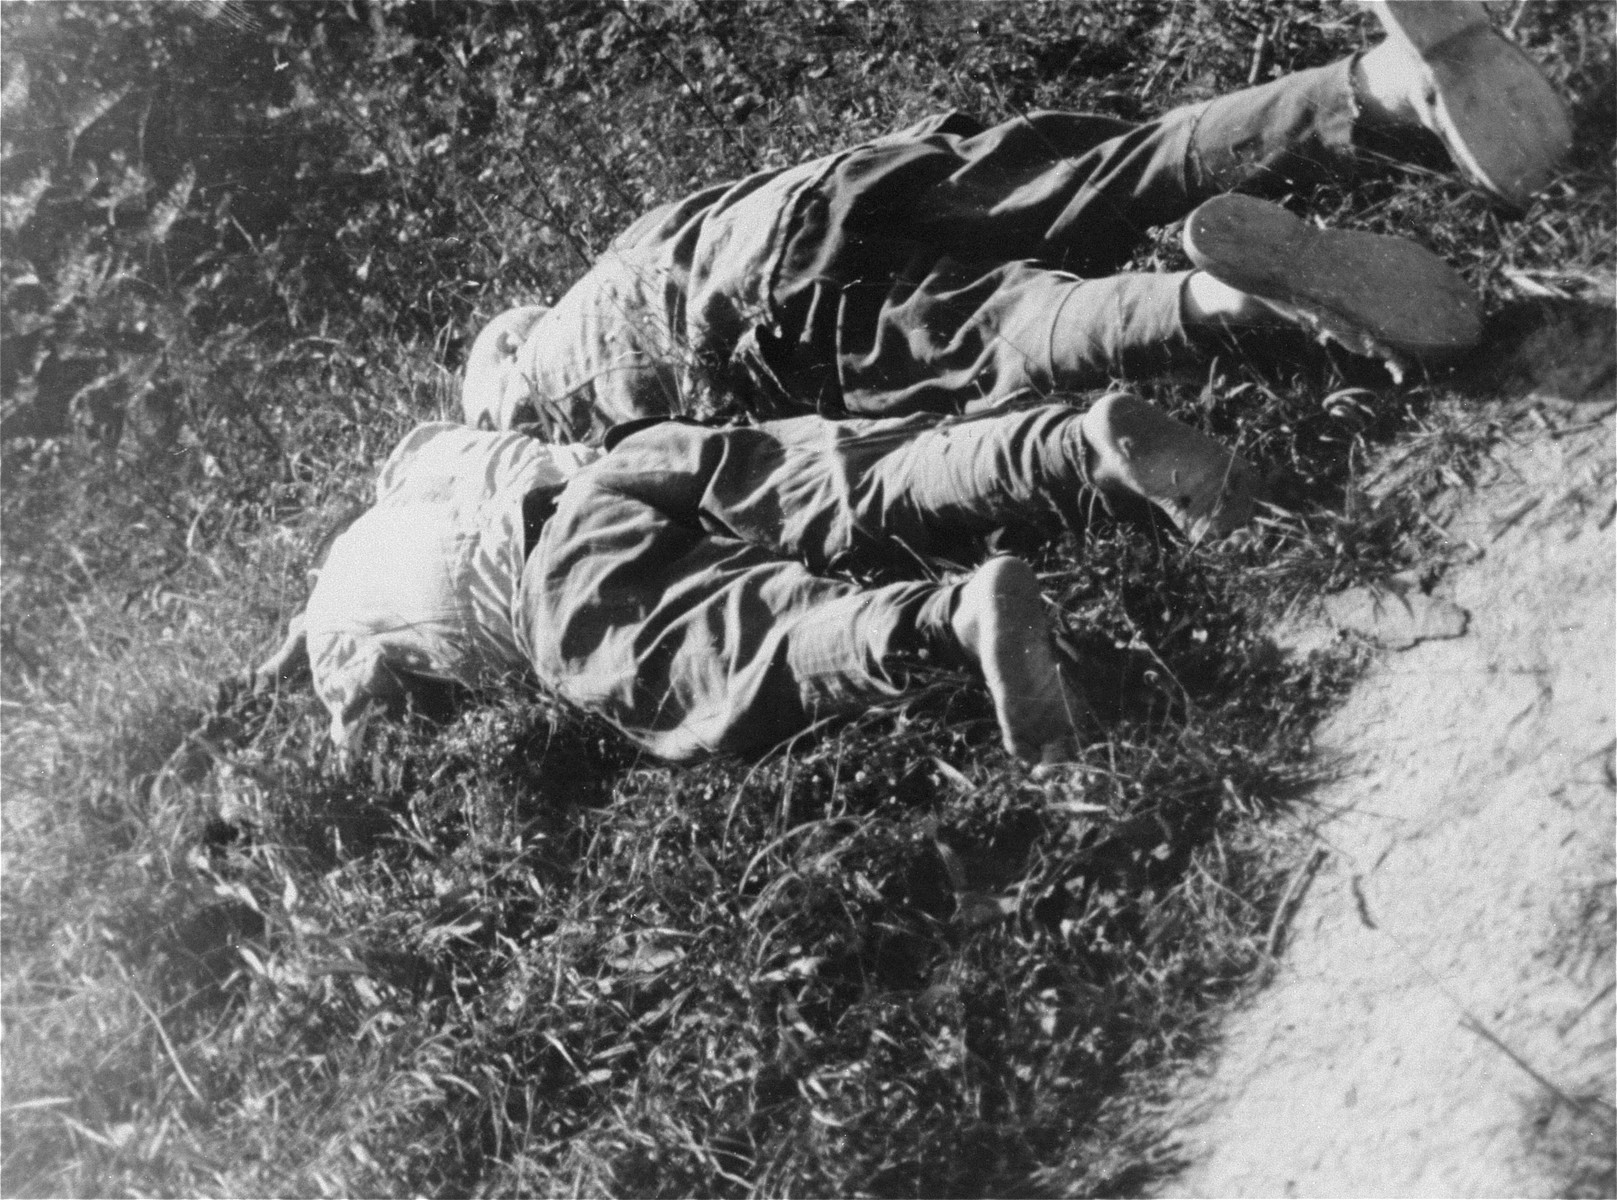 The bodies of two Czech brothers who were shot in the Wiener Graben quarry at Mauthausen.